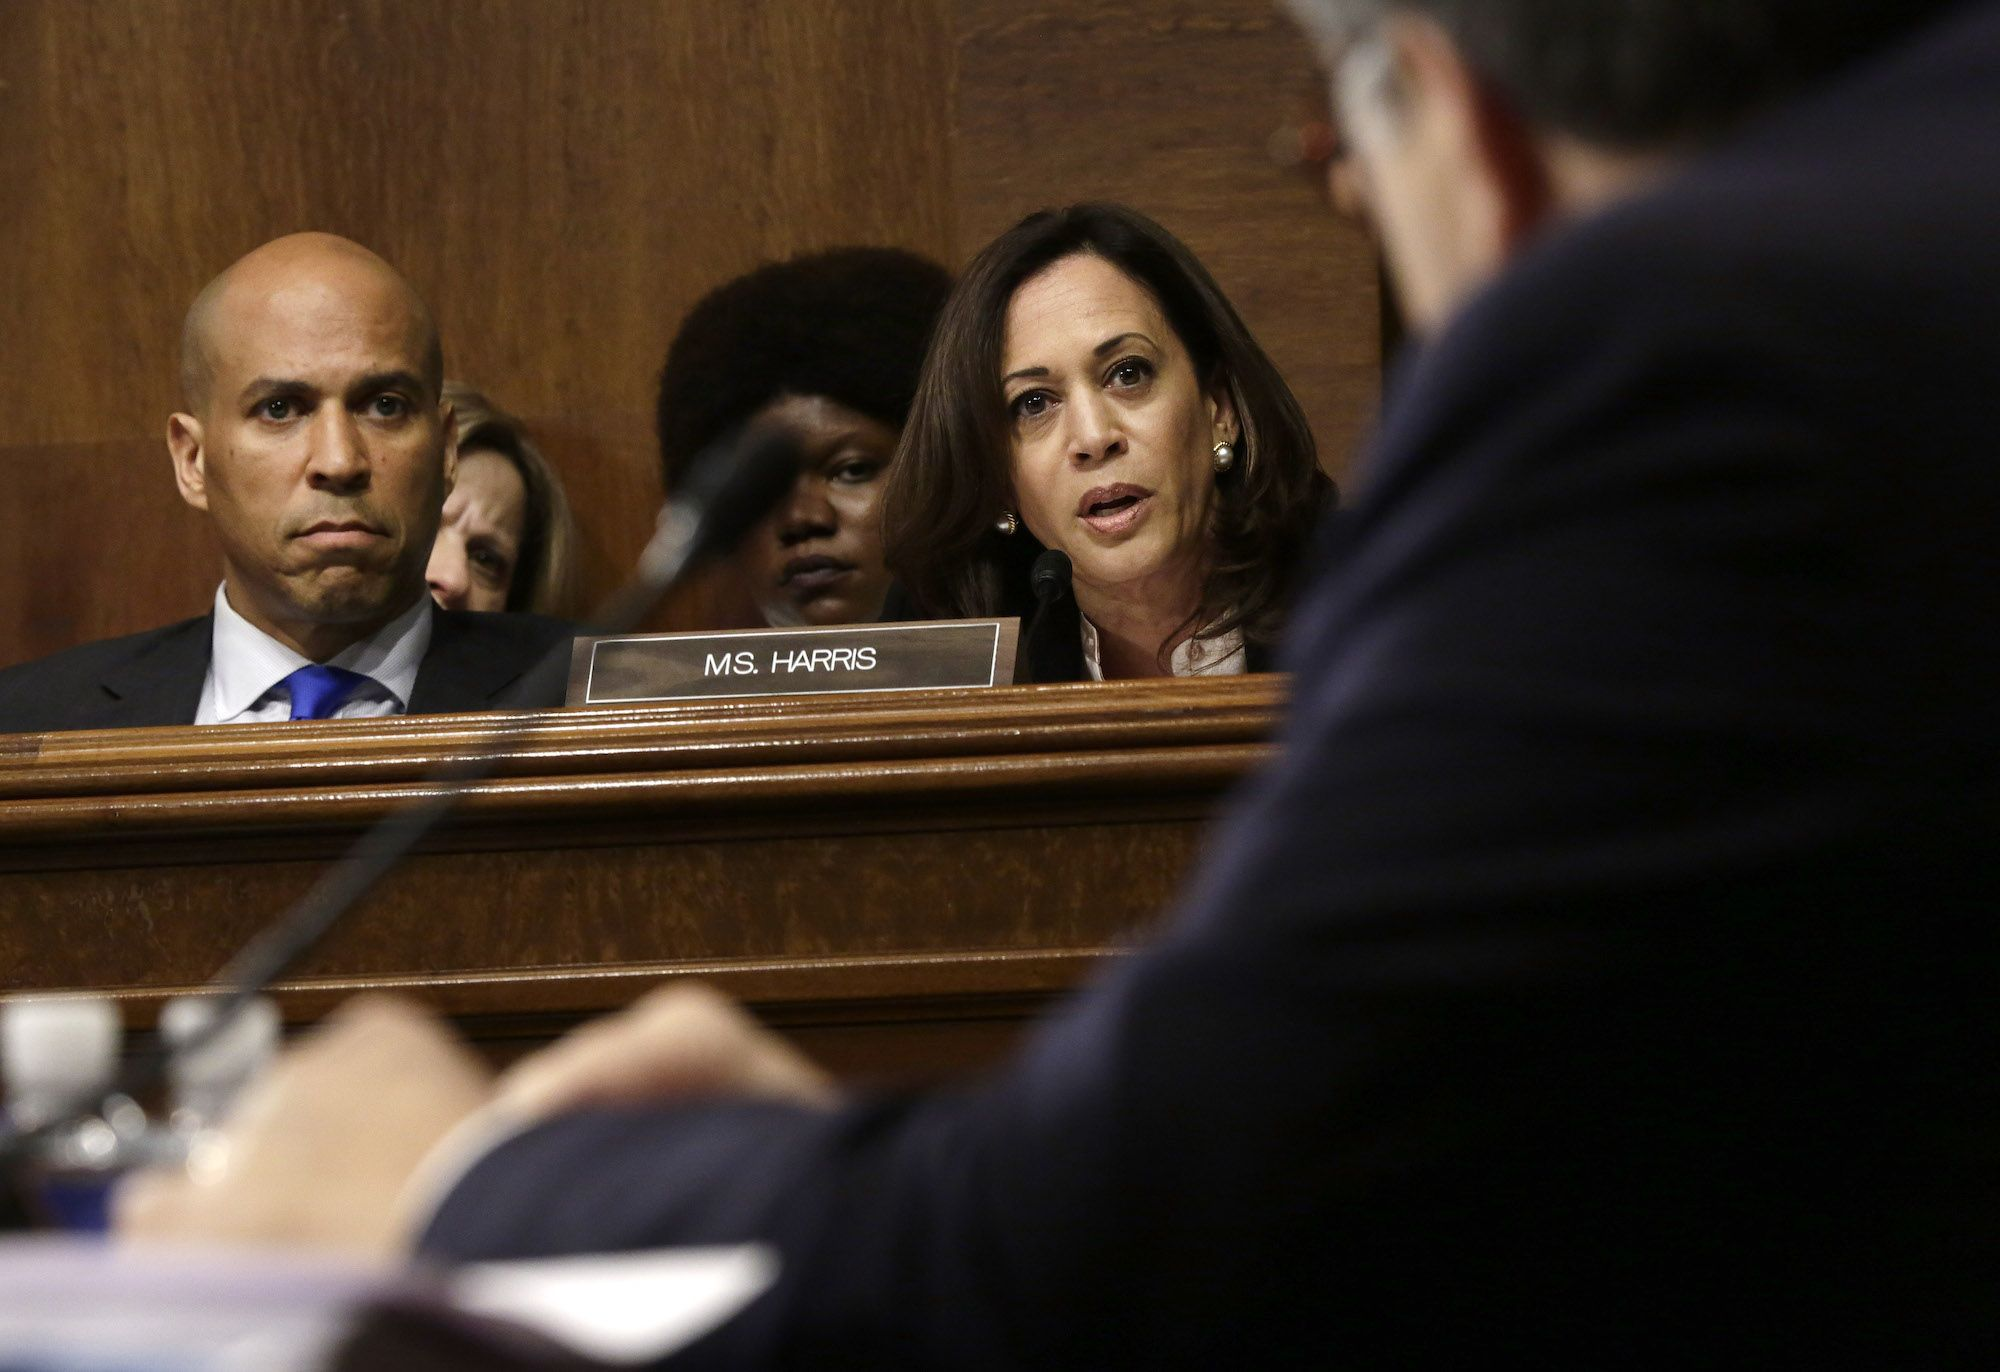 Kamala Harris Cross-Examined William Barr Until He Gave Away the Game on His Obstruction Decision